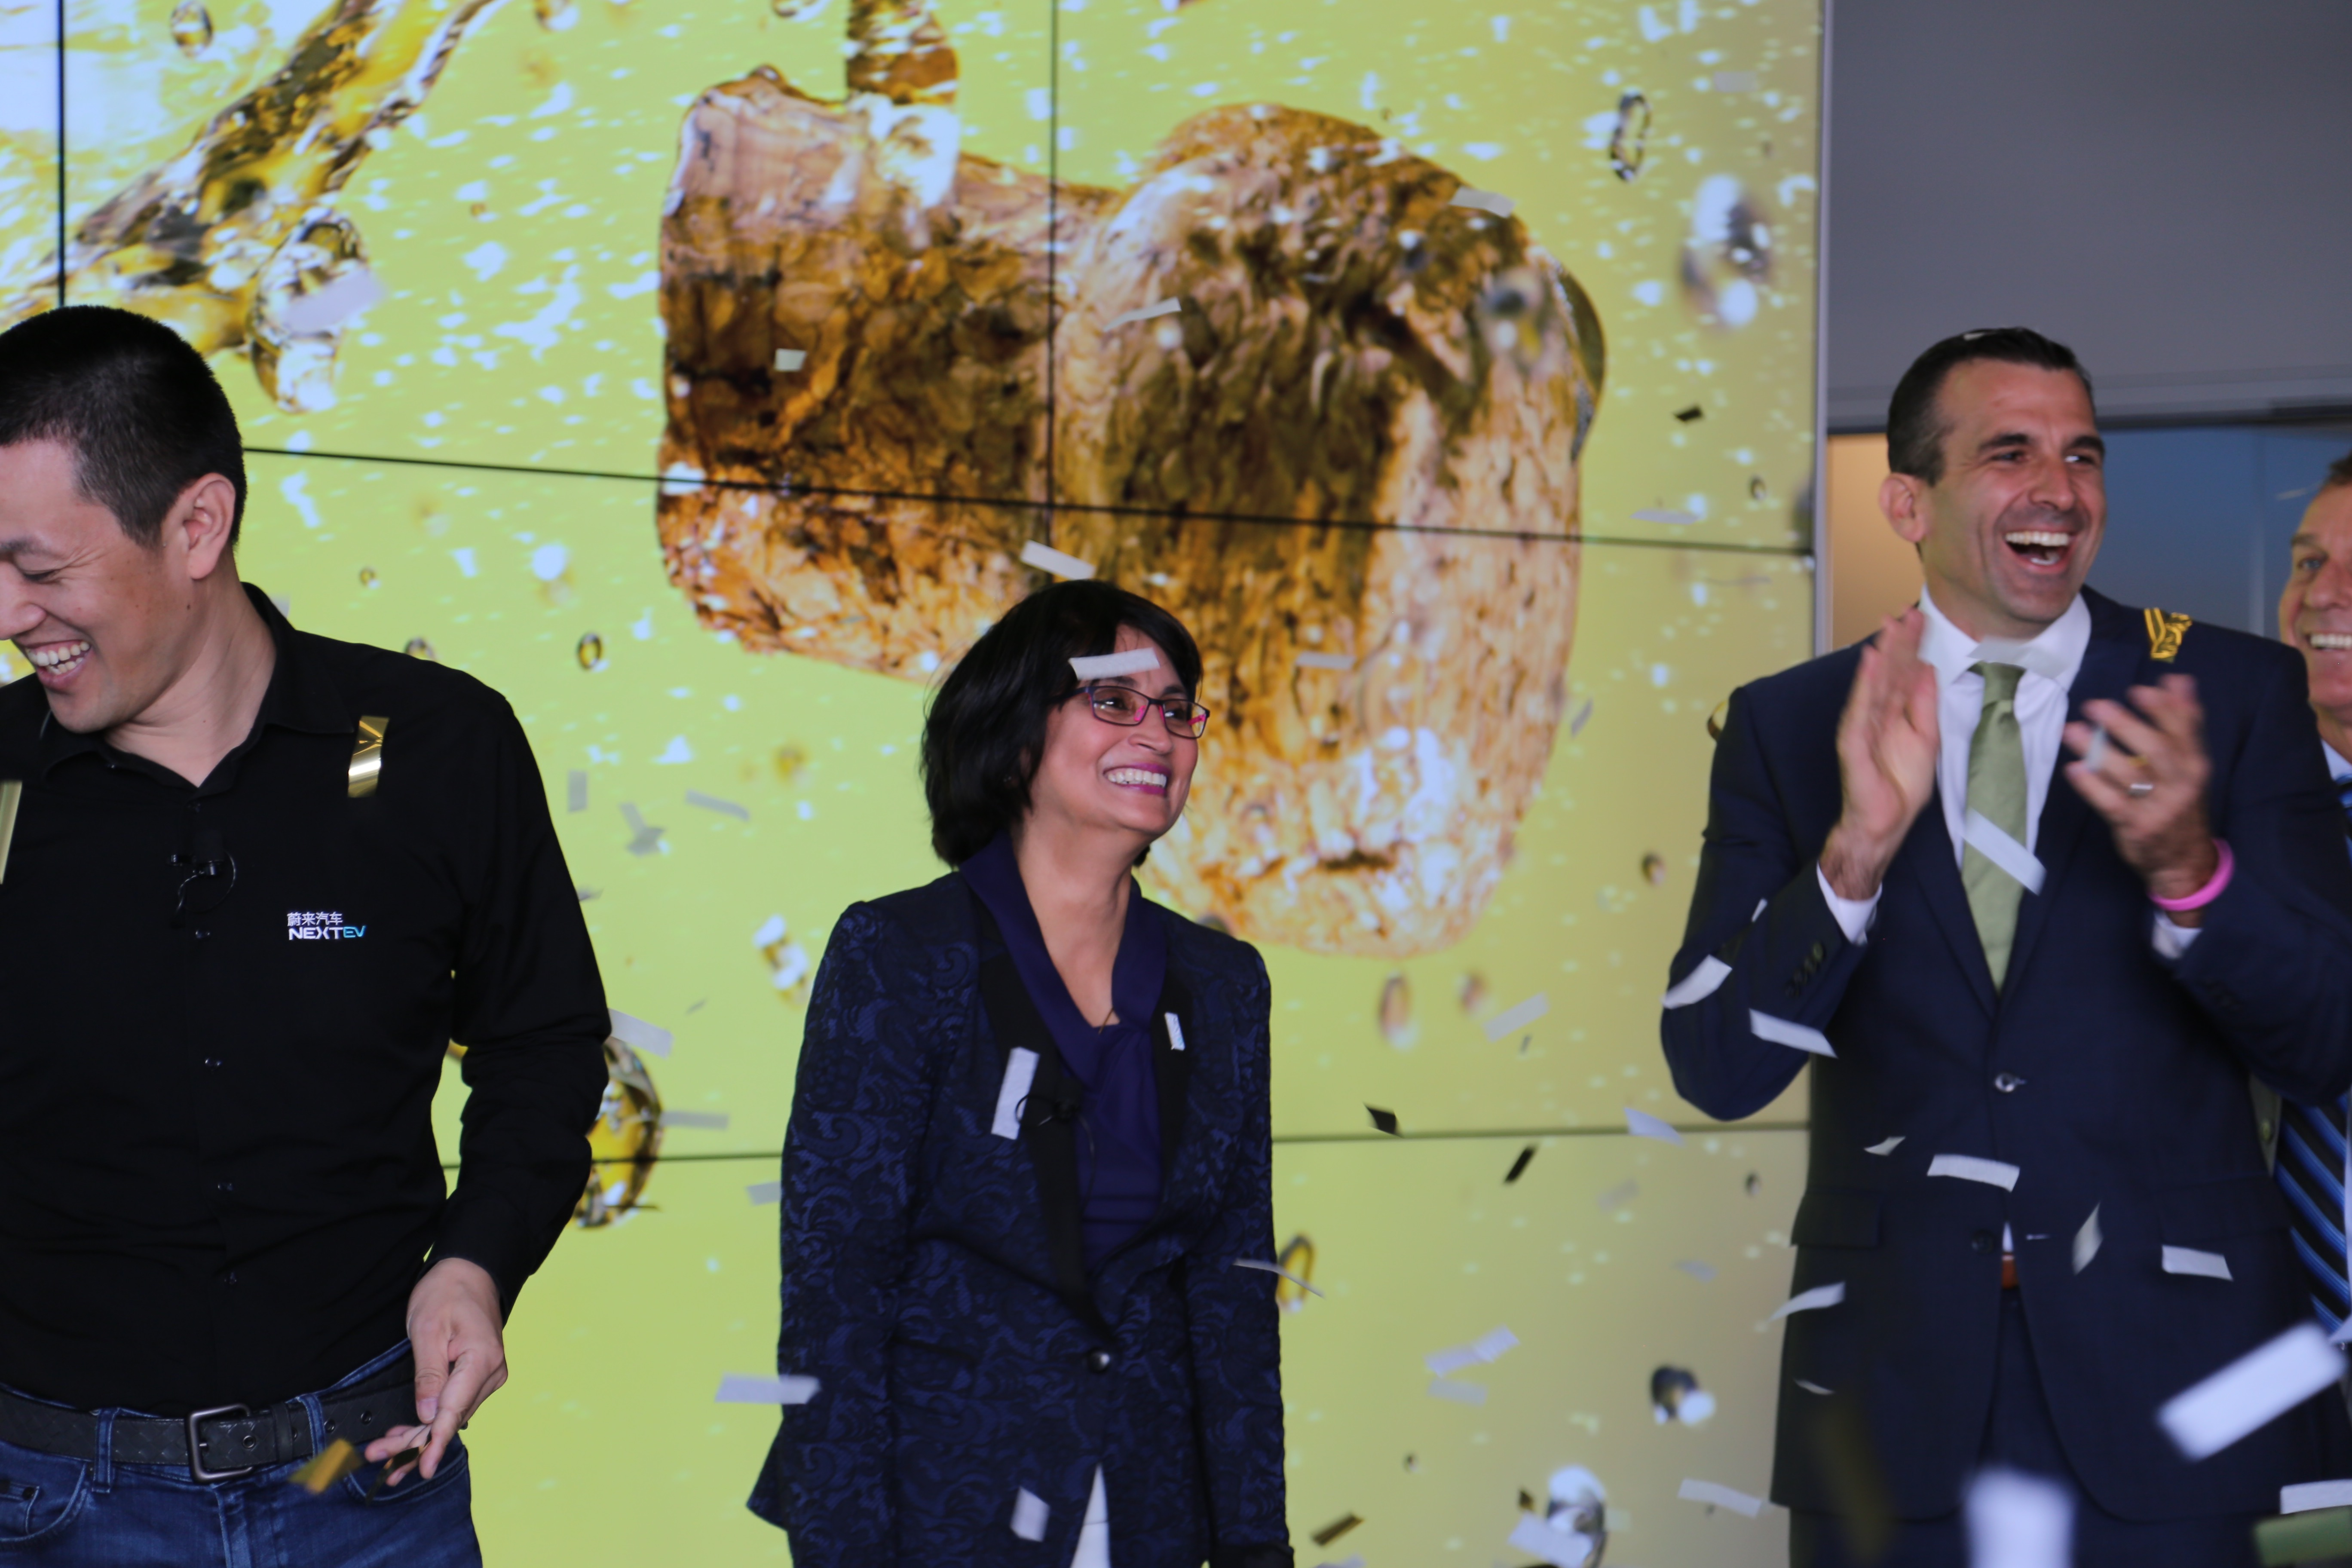 NextEV's grand opening in San Jose, Calif, from left to right, Chairman William Li, U.S. CEO Padmasree Warrior and San Jose Mayor Sam Liccardo.